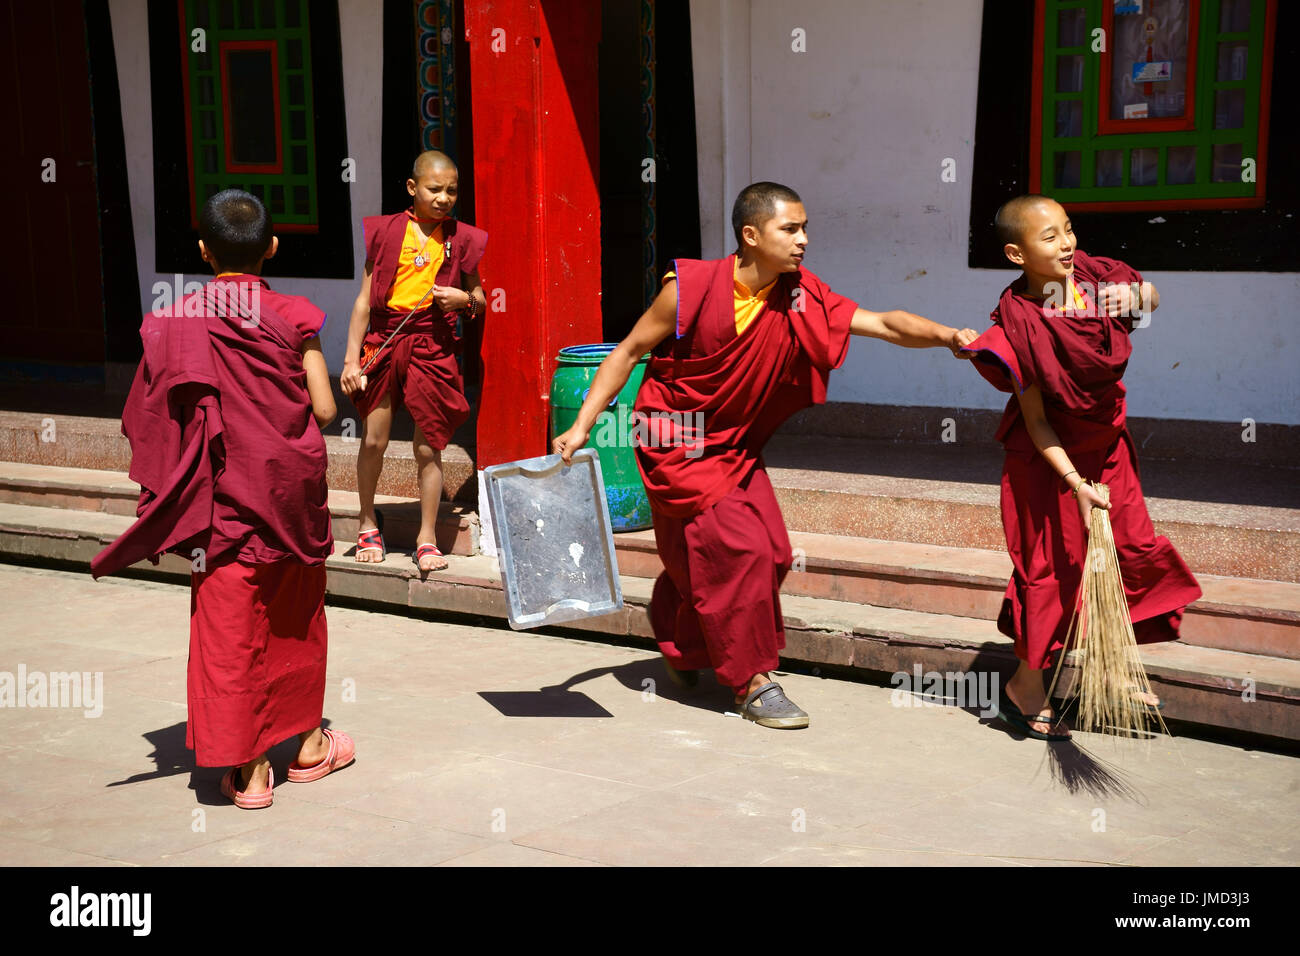 Young Buddhist monks playing while doing chores, Dharma Chakra Center, Rumtek, Sikkim, India - Stock Image